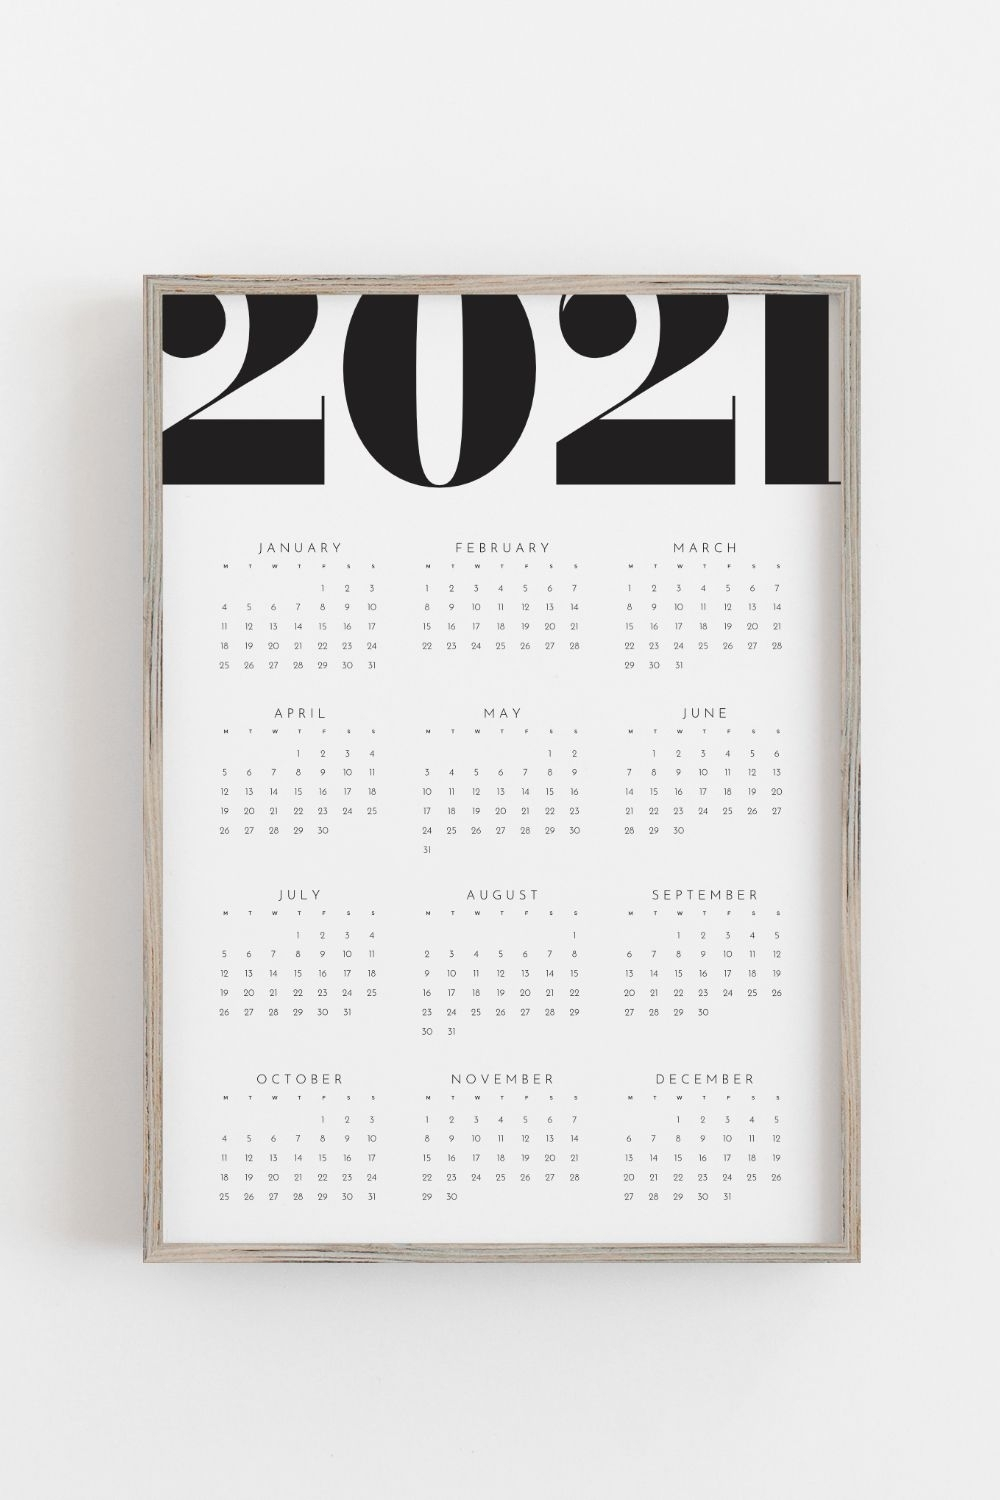 Printable Calendar 2021 Yearly Wall Calendar Year At A